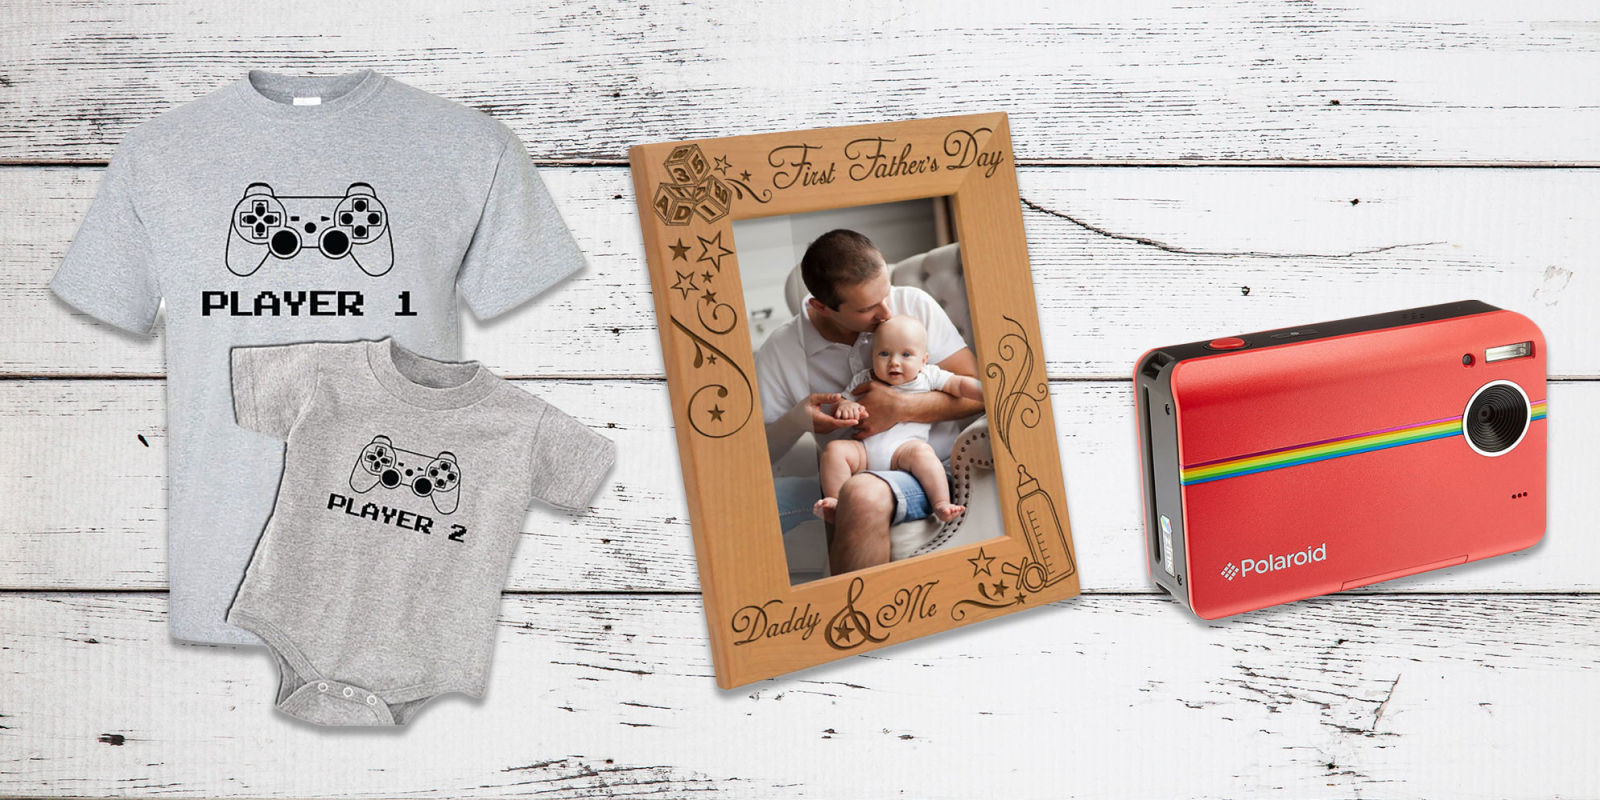 First Fathers Day Gift Ideas  11 First Father s Day Gift Ideas Best Gifts for New Dads